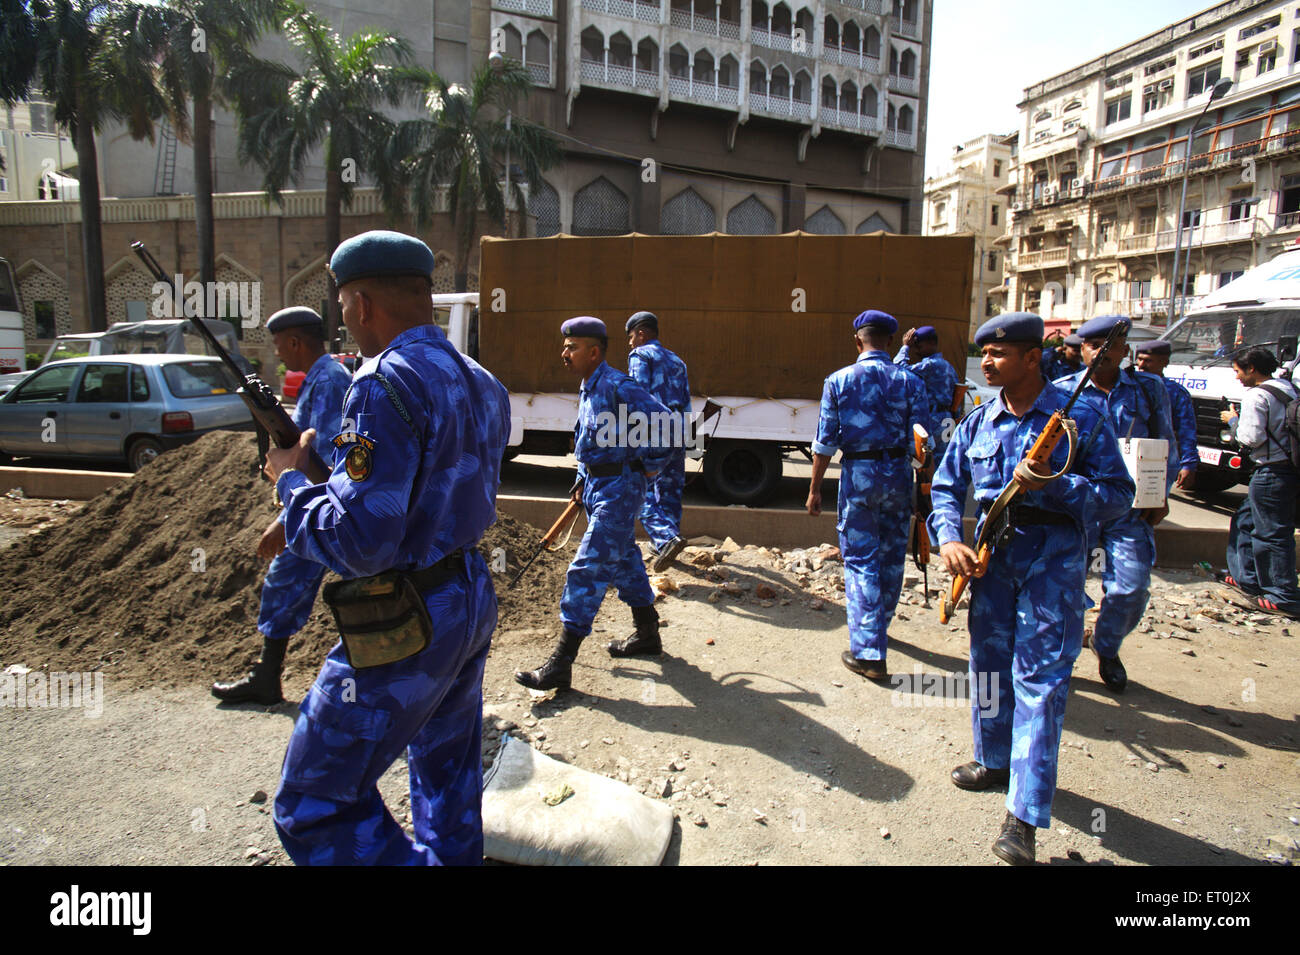 Personnel of Rapid Action Force outside Taj Mahal hotel during terrorist attack by Deccan Mujahideen ; Bombay - Stock Image